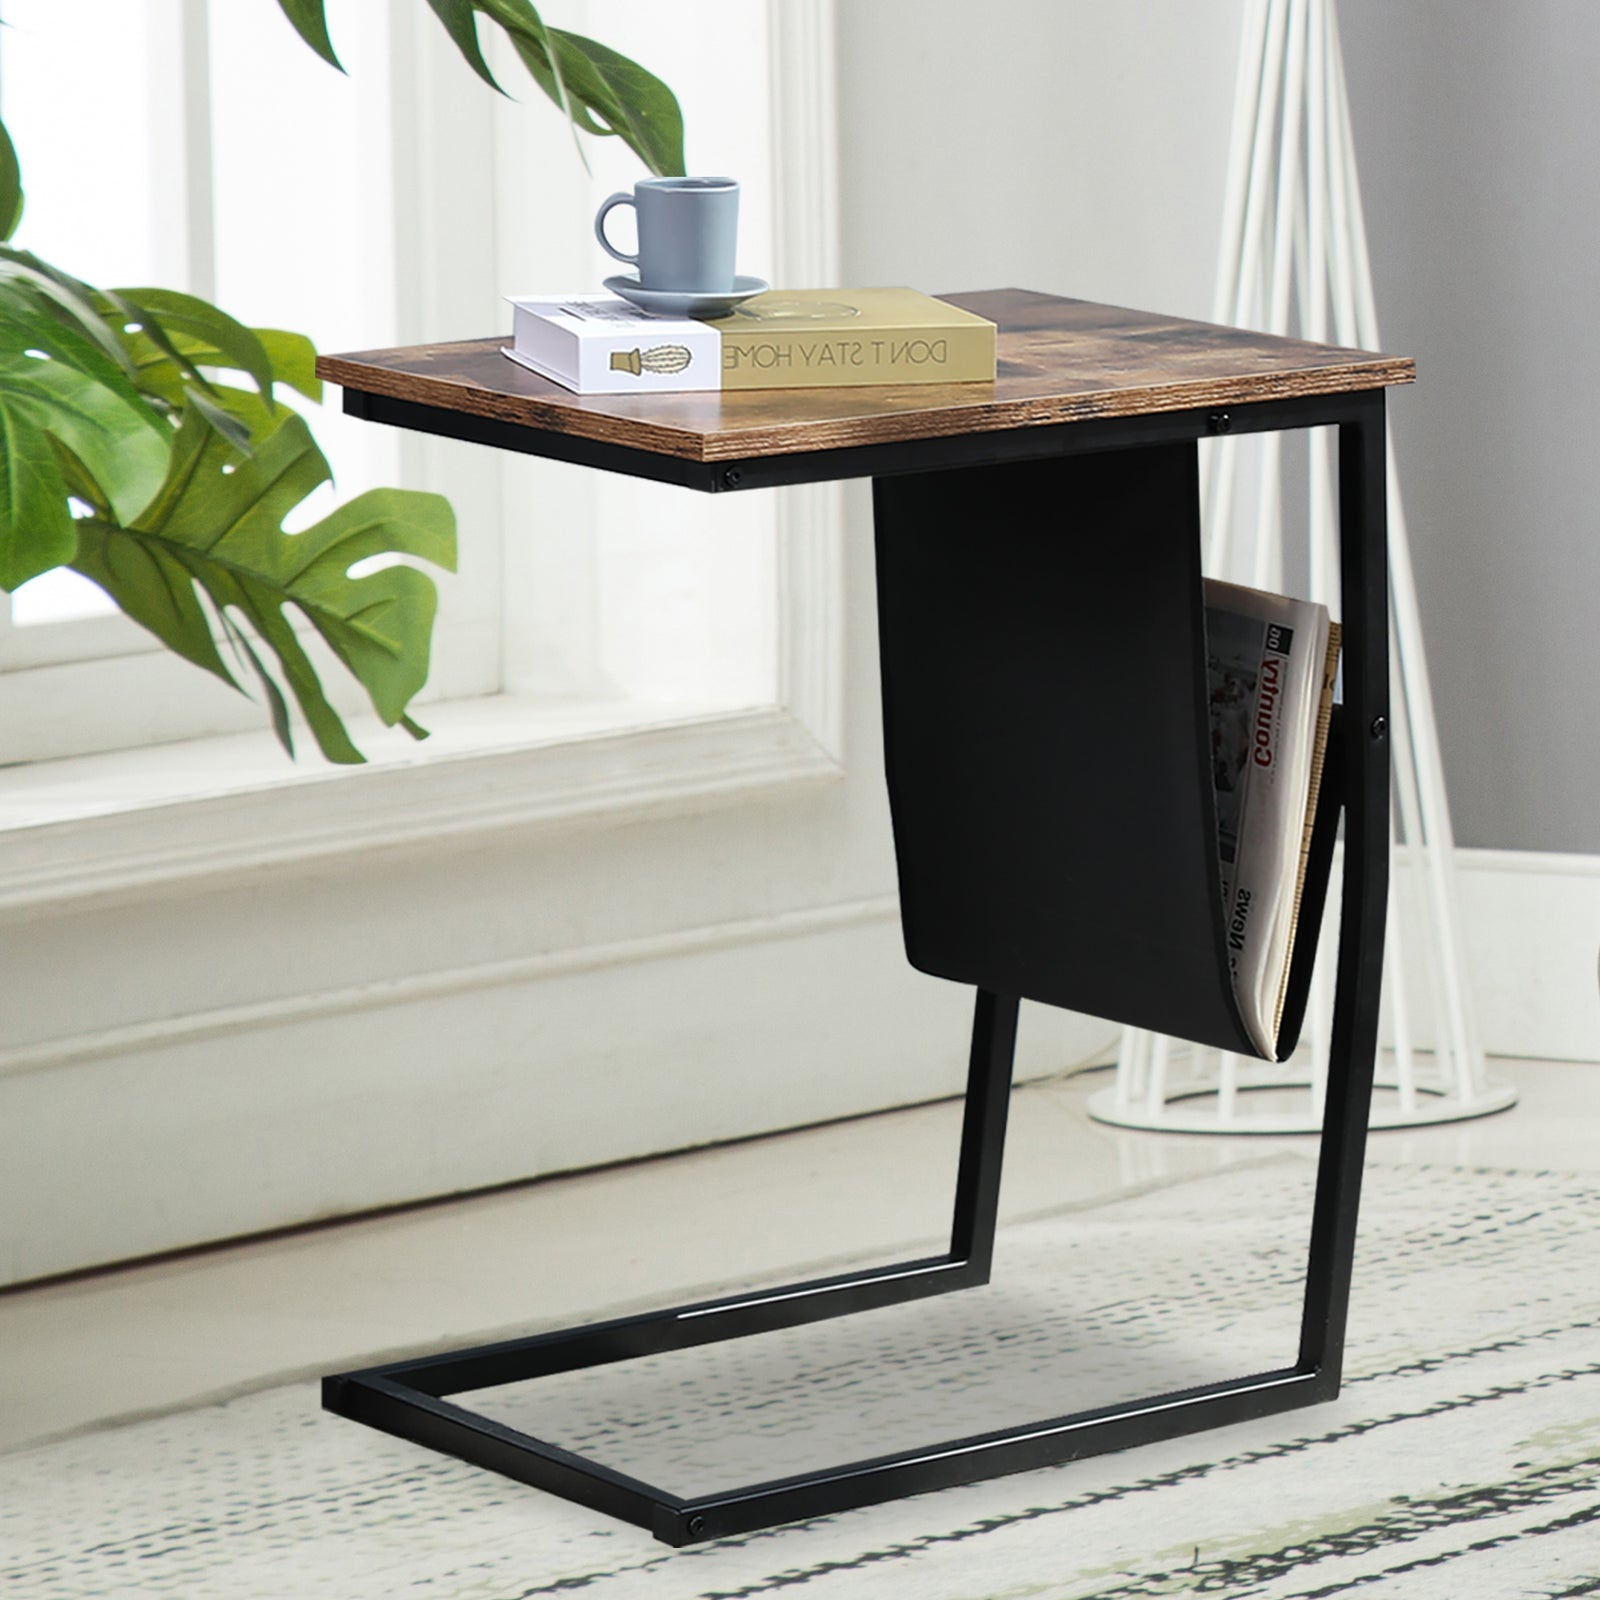 Black Industrial Side Table With Metal Frame Mobile Snack Table for Coffee Laptop Tablet BH50124965